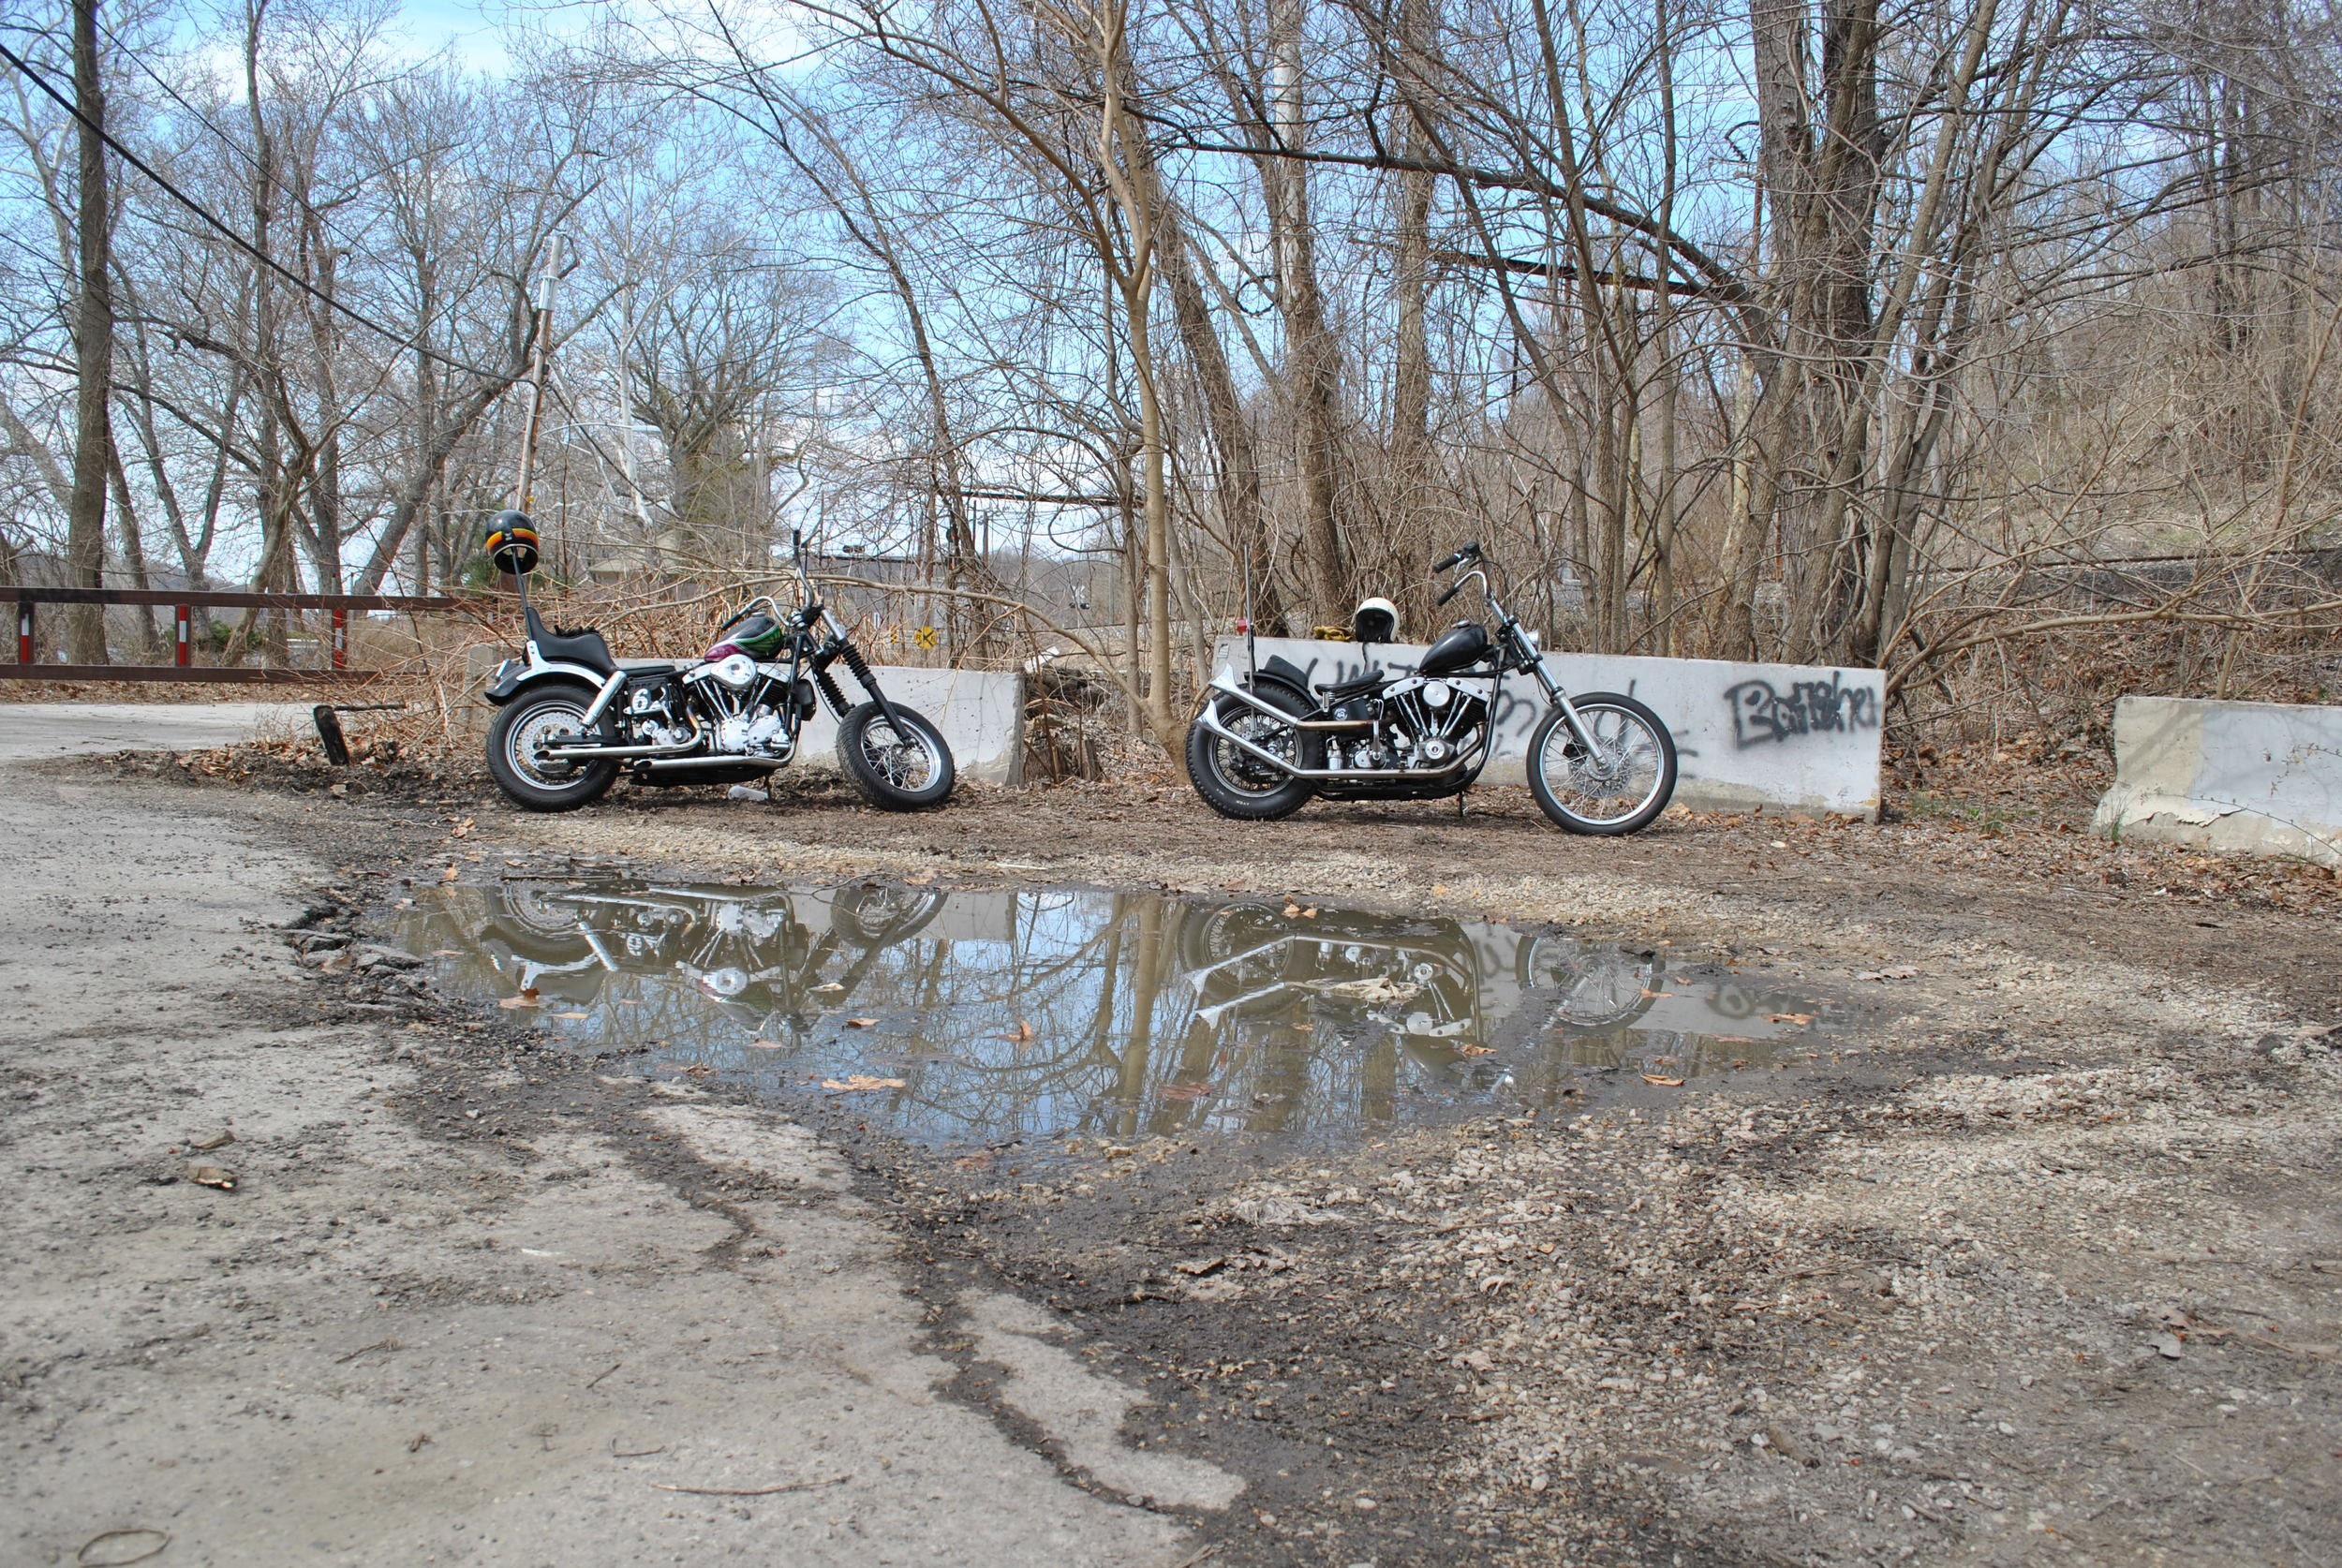 Justin's 1962 Pan-Shovel and Dan's 1974 Shovelhead